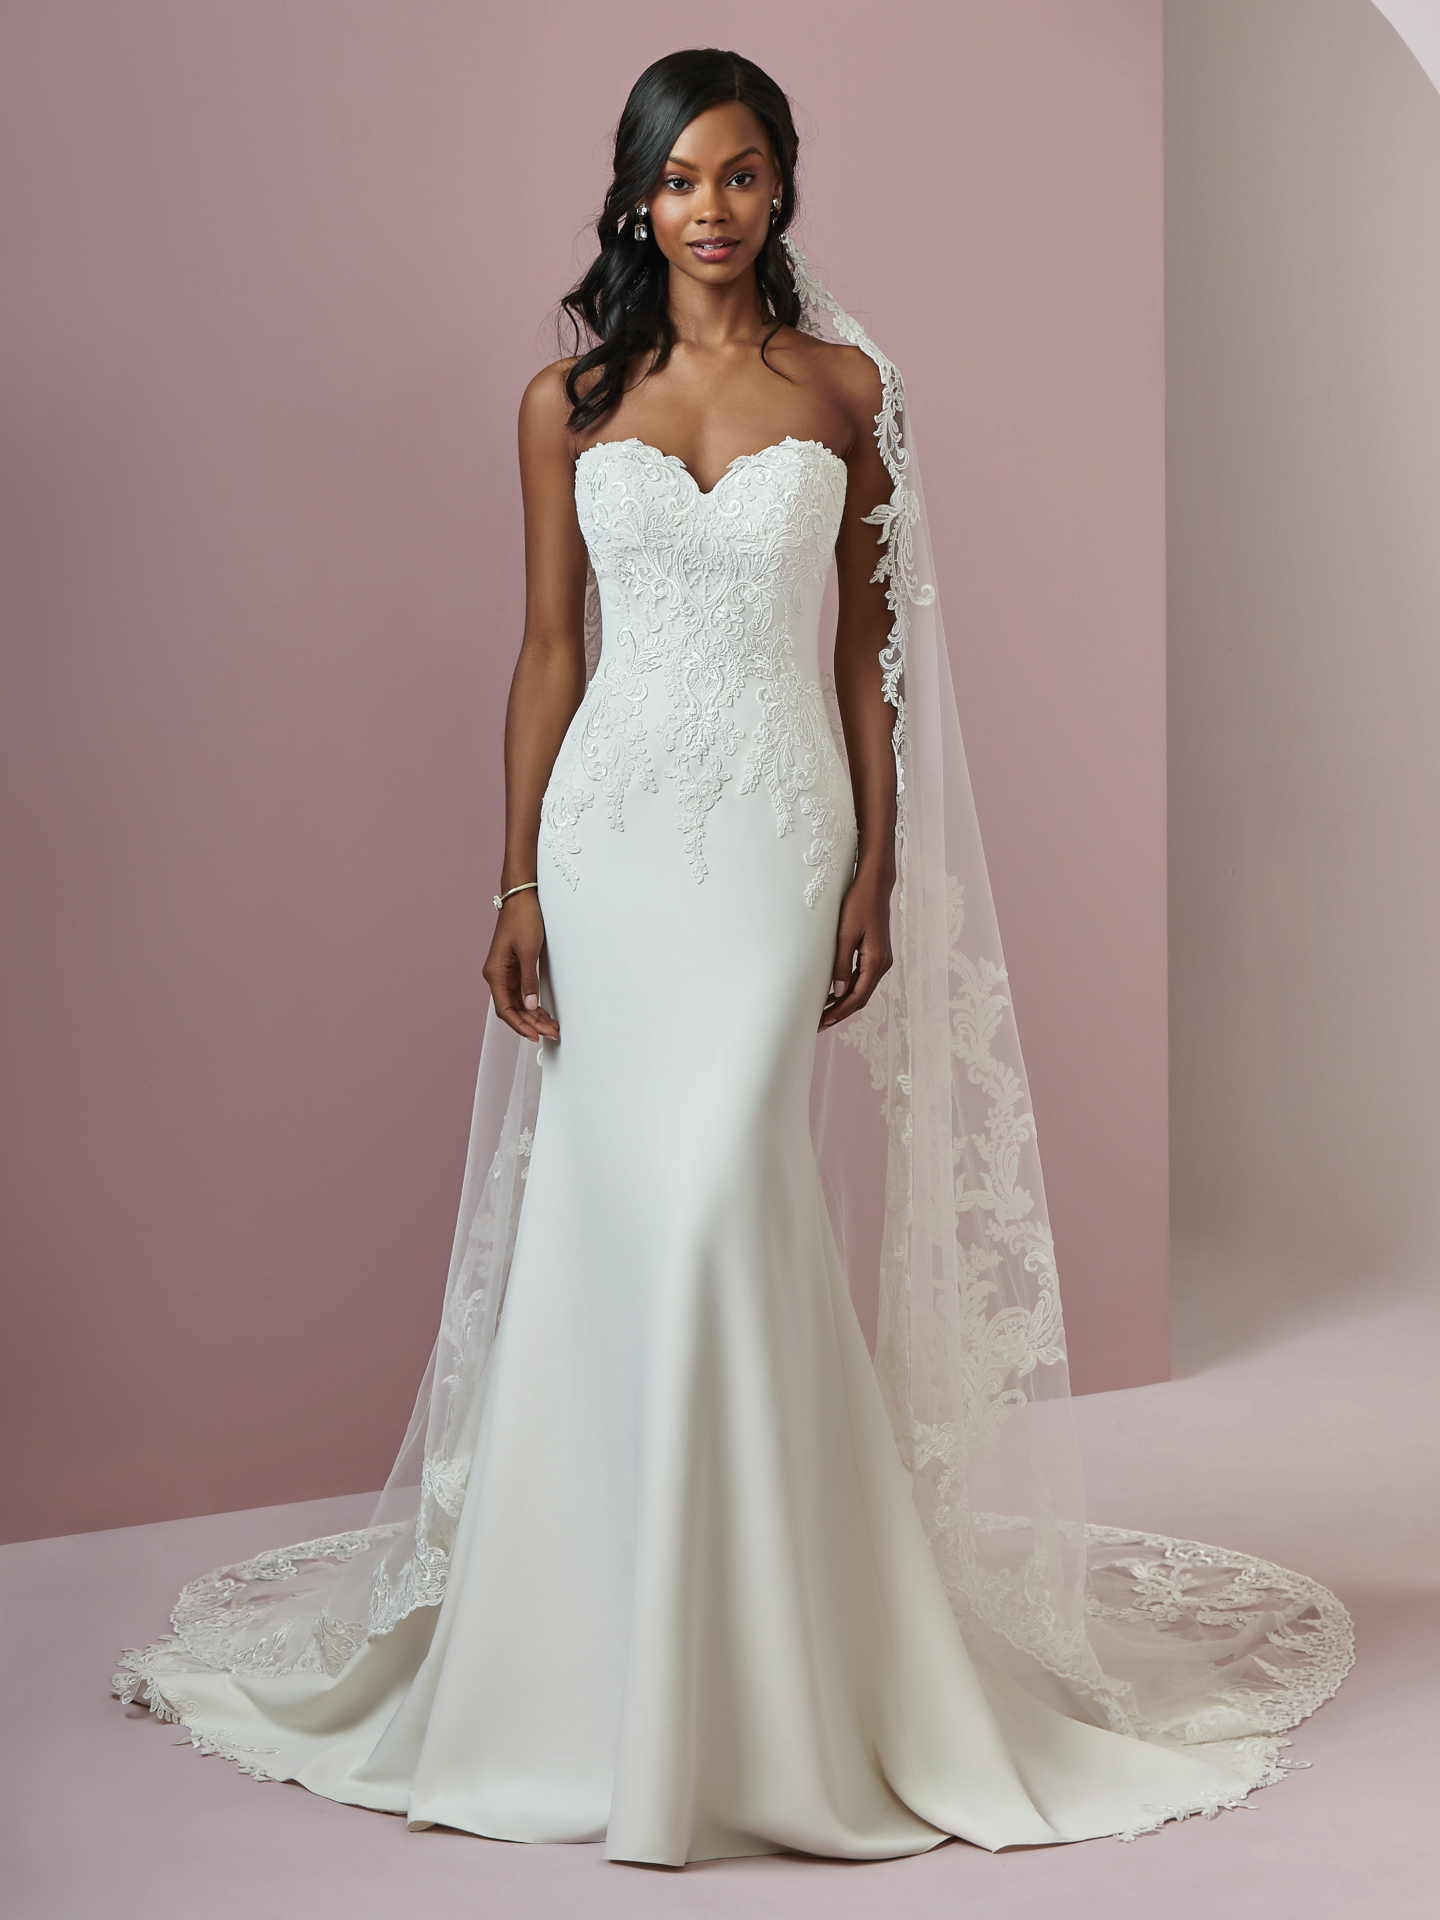 Slip Style Wedding Dresses Chic And Relaxed Brides Billie By Rebecca Ingram